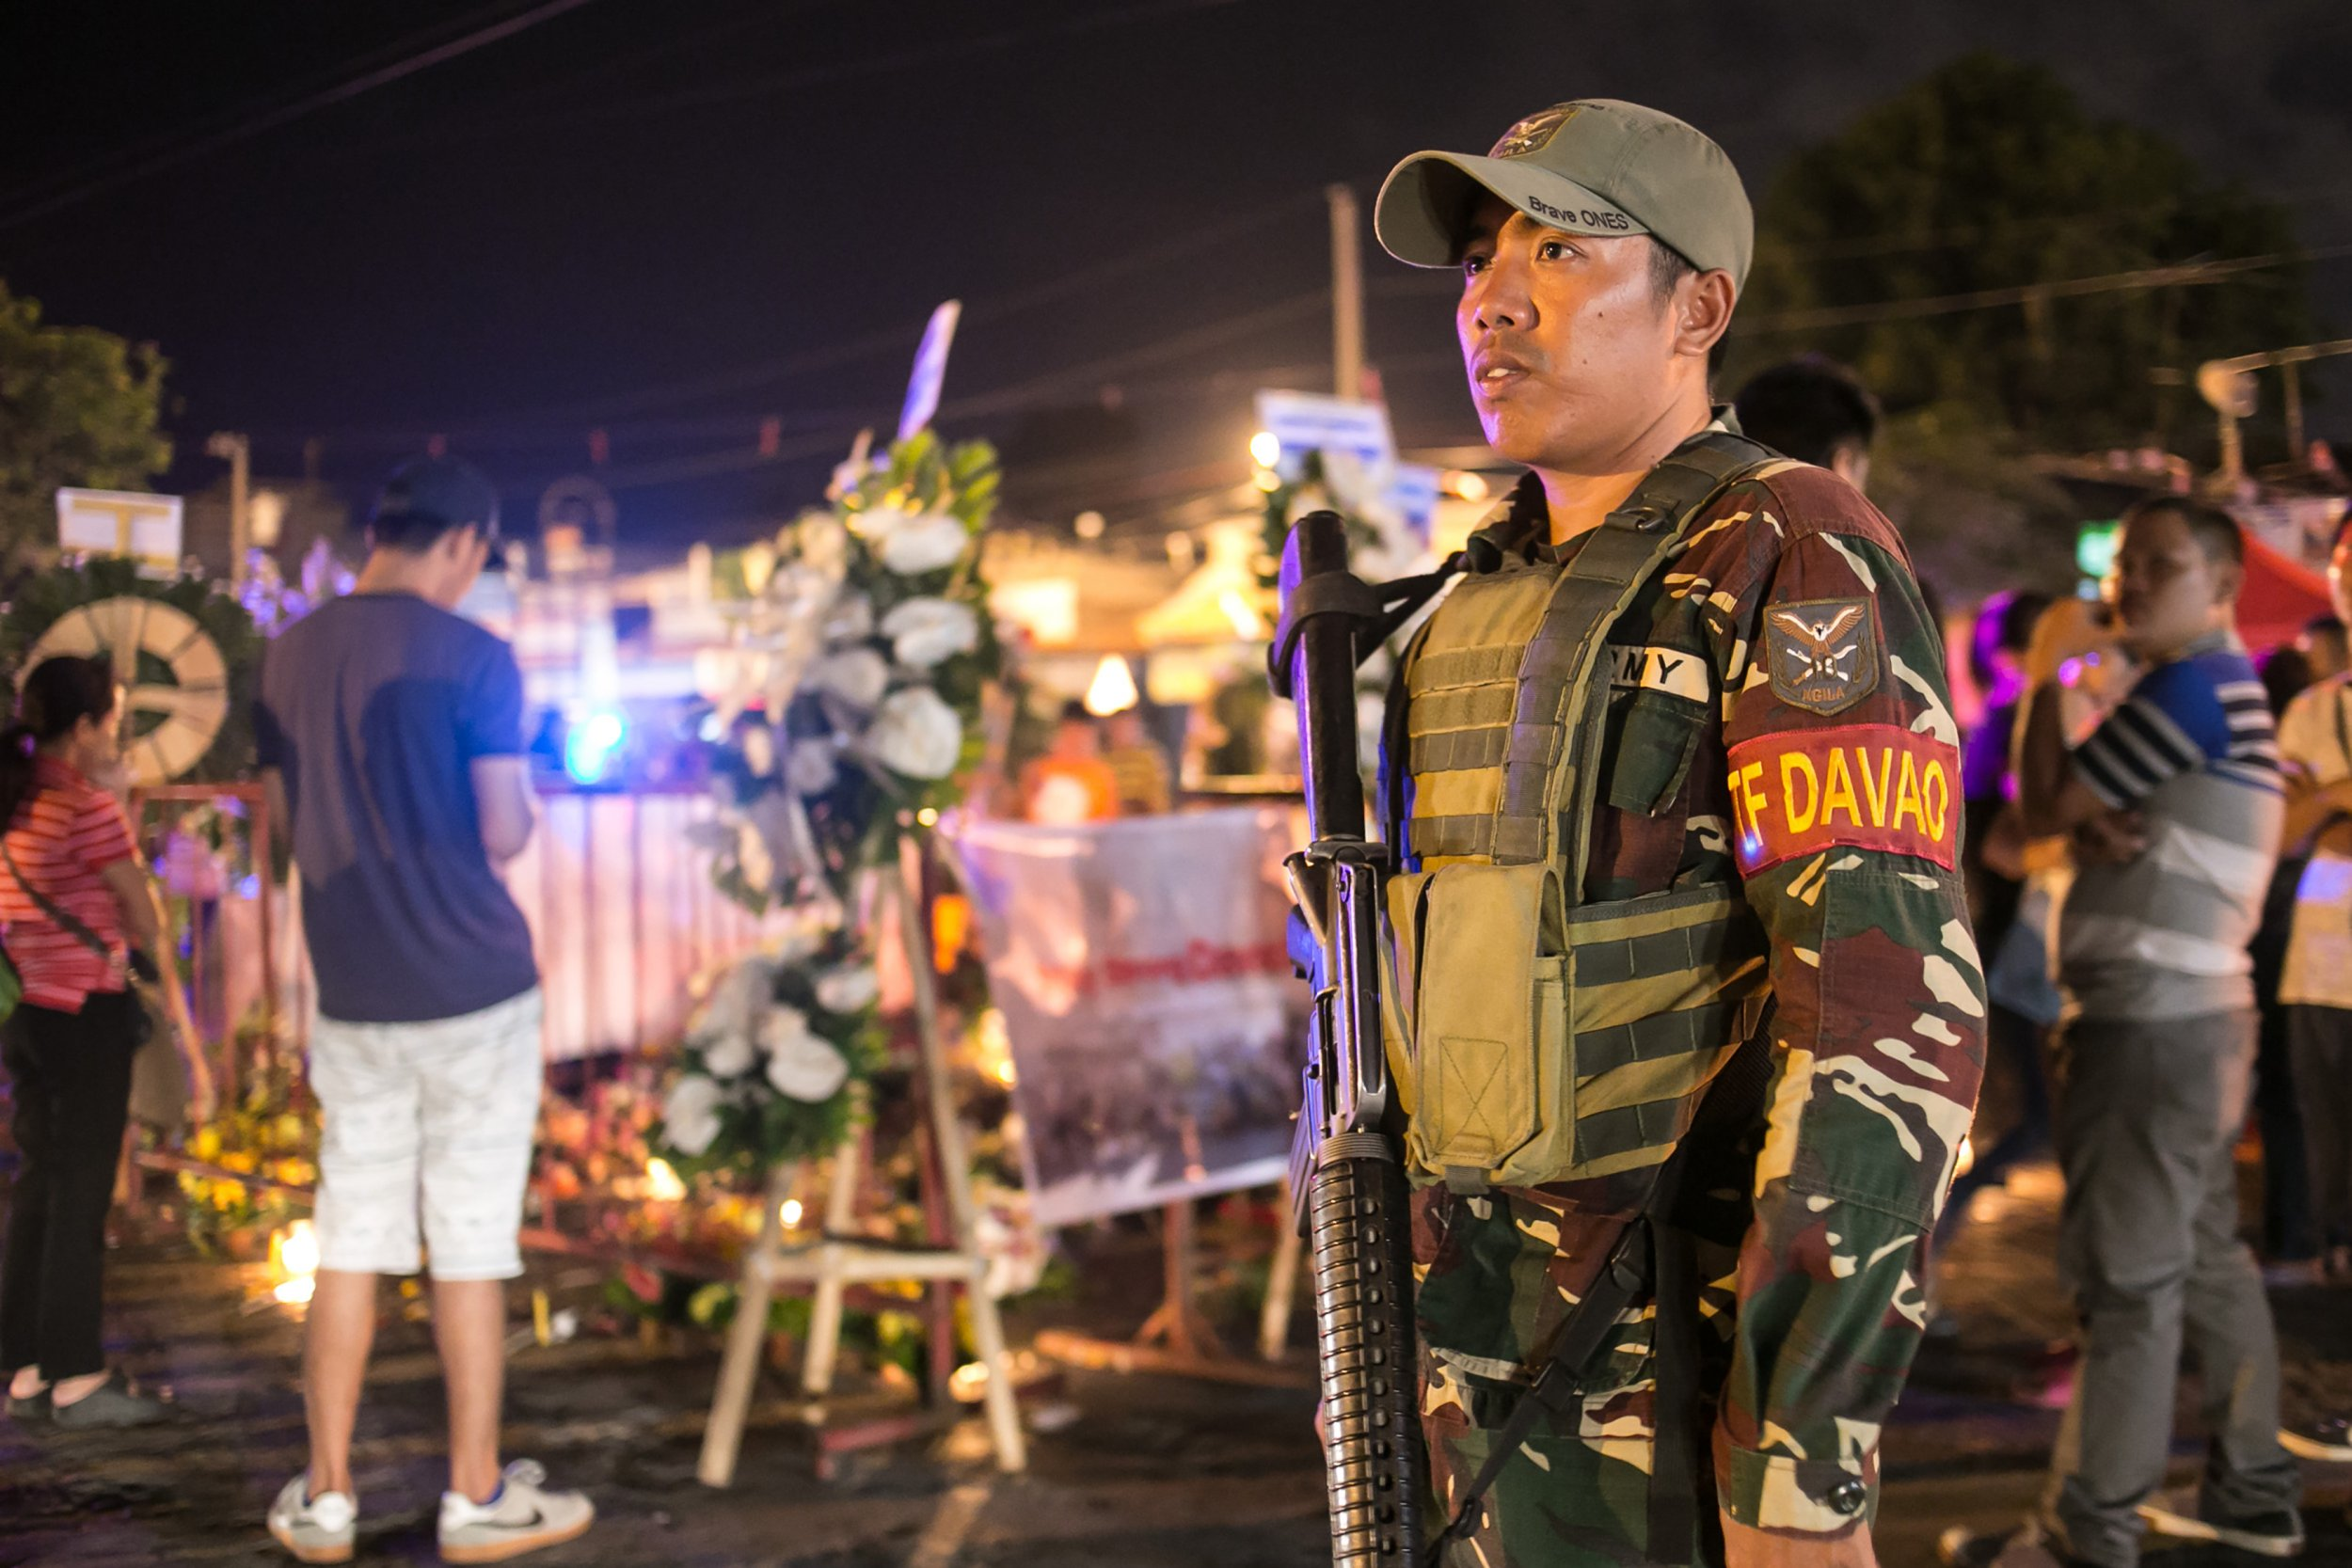 Davao City soldier